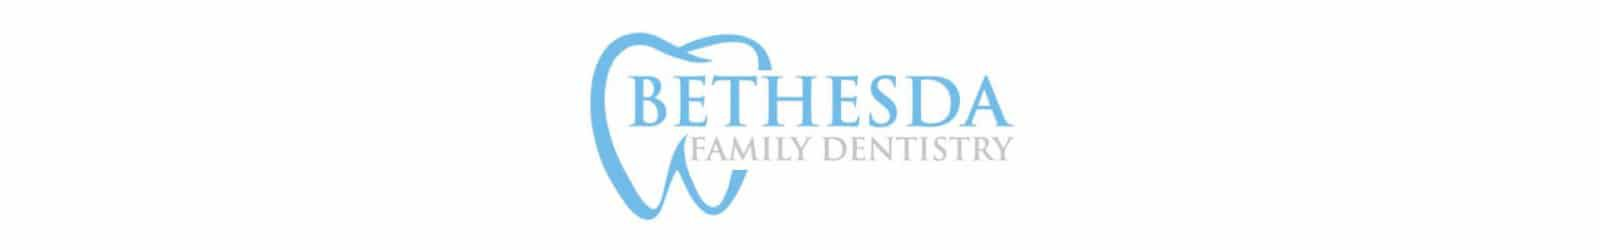 bethesda family dentistry logo example